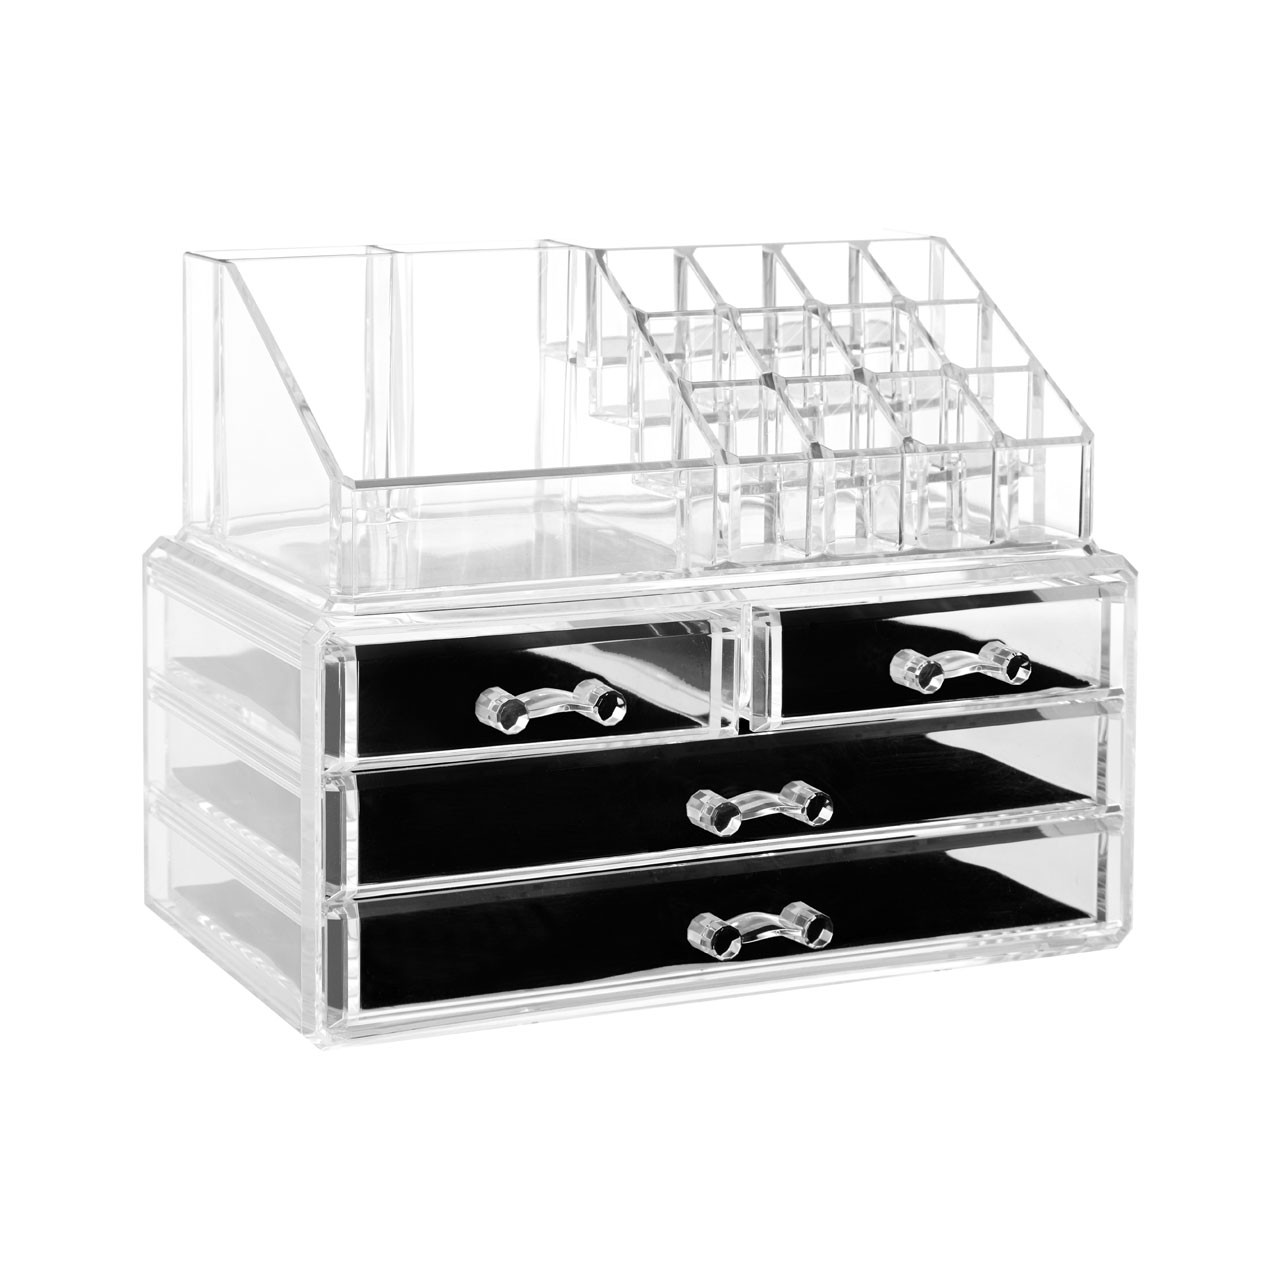 Prime Furnishing 16 Compartment Cosmetics Organiser